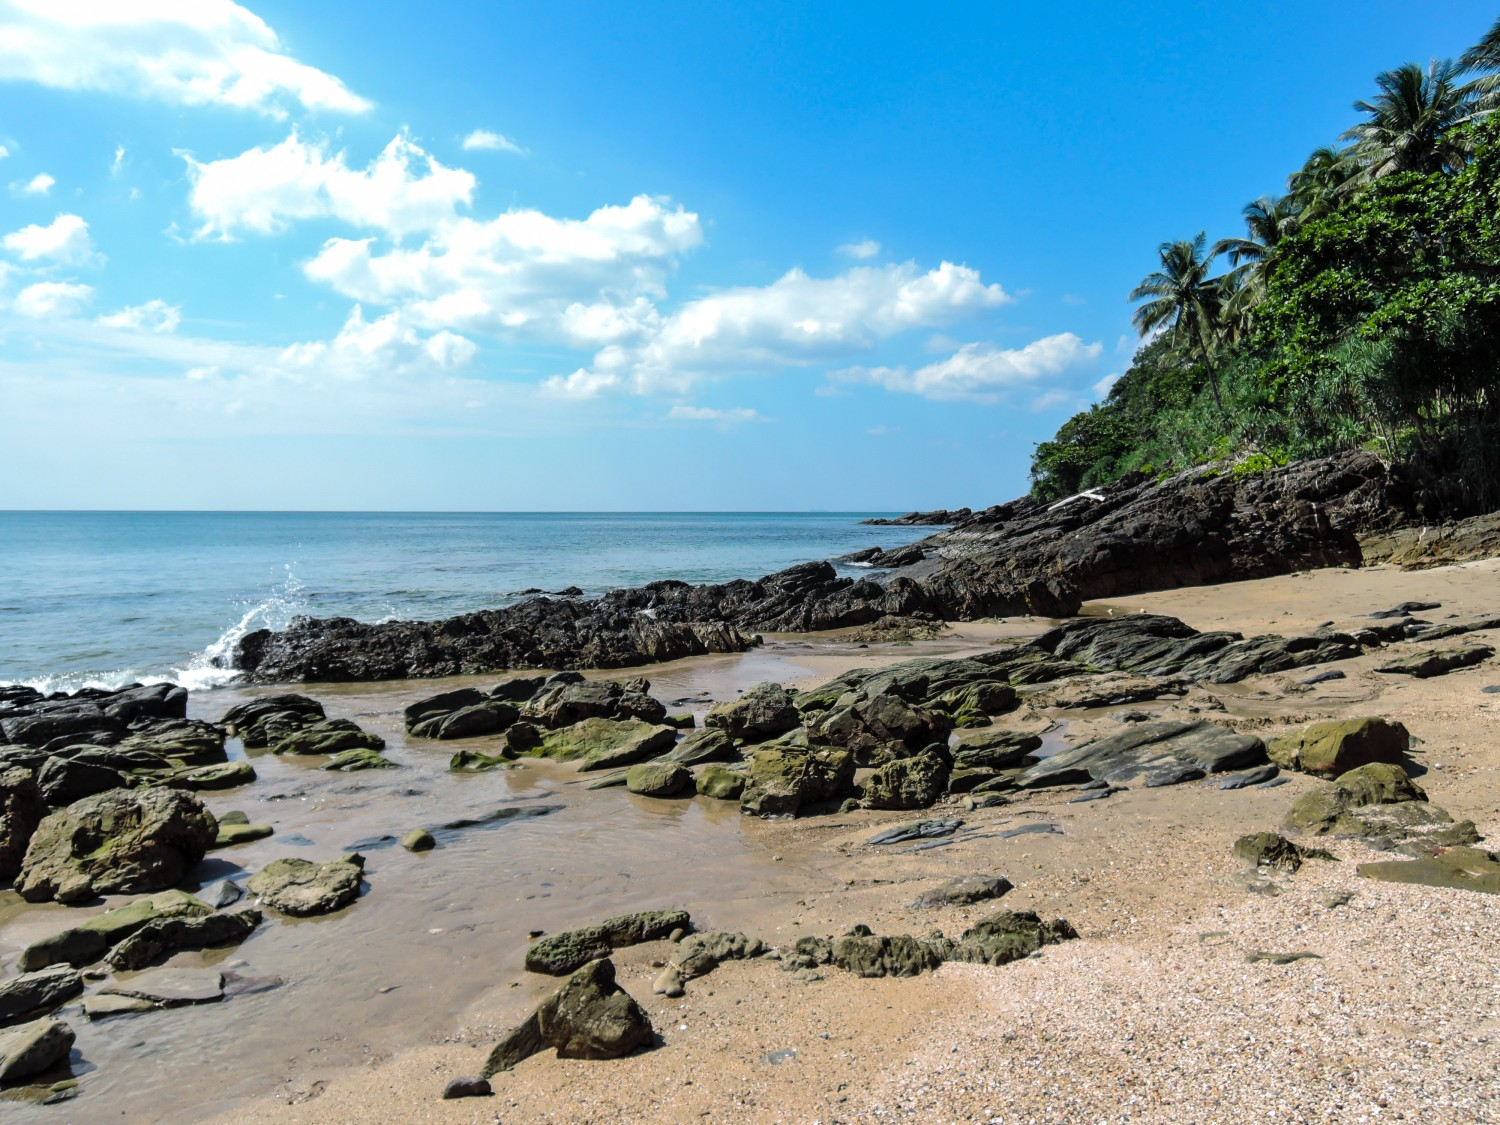 Koh Lanta Four awesome Southeast Asia travel itineraries I Photography I Itinerary I Landscape I Food I Architecture I Laos I Thailand I Cambodia I Myanmar I Malaysia I Vietnam. Read the full travel guide now #travel #backpacking